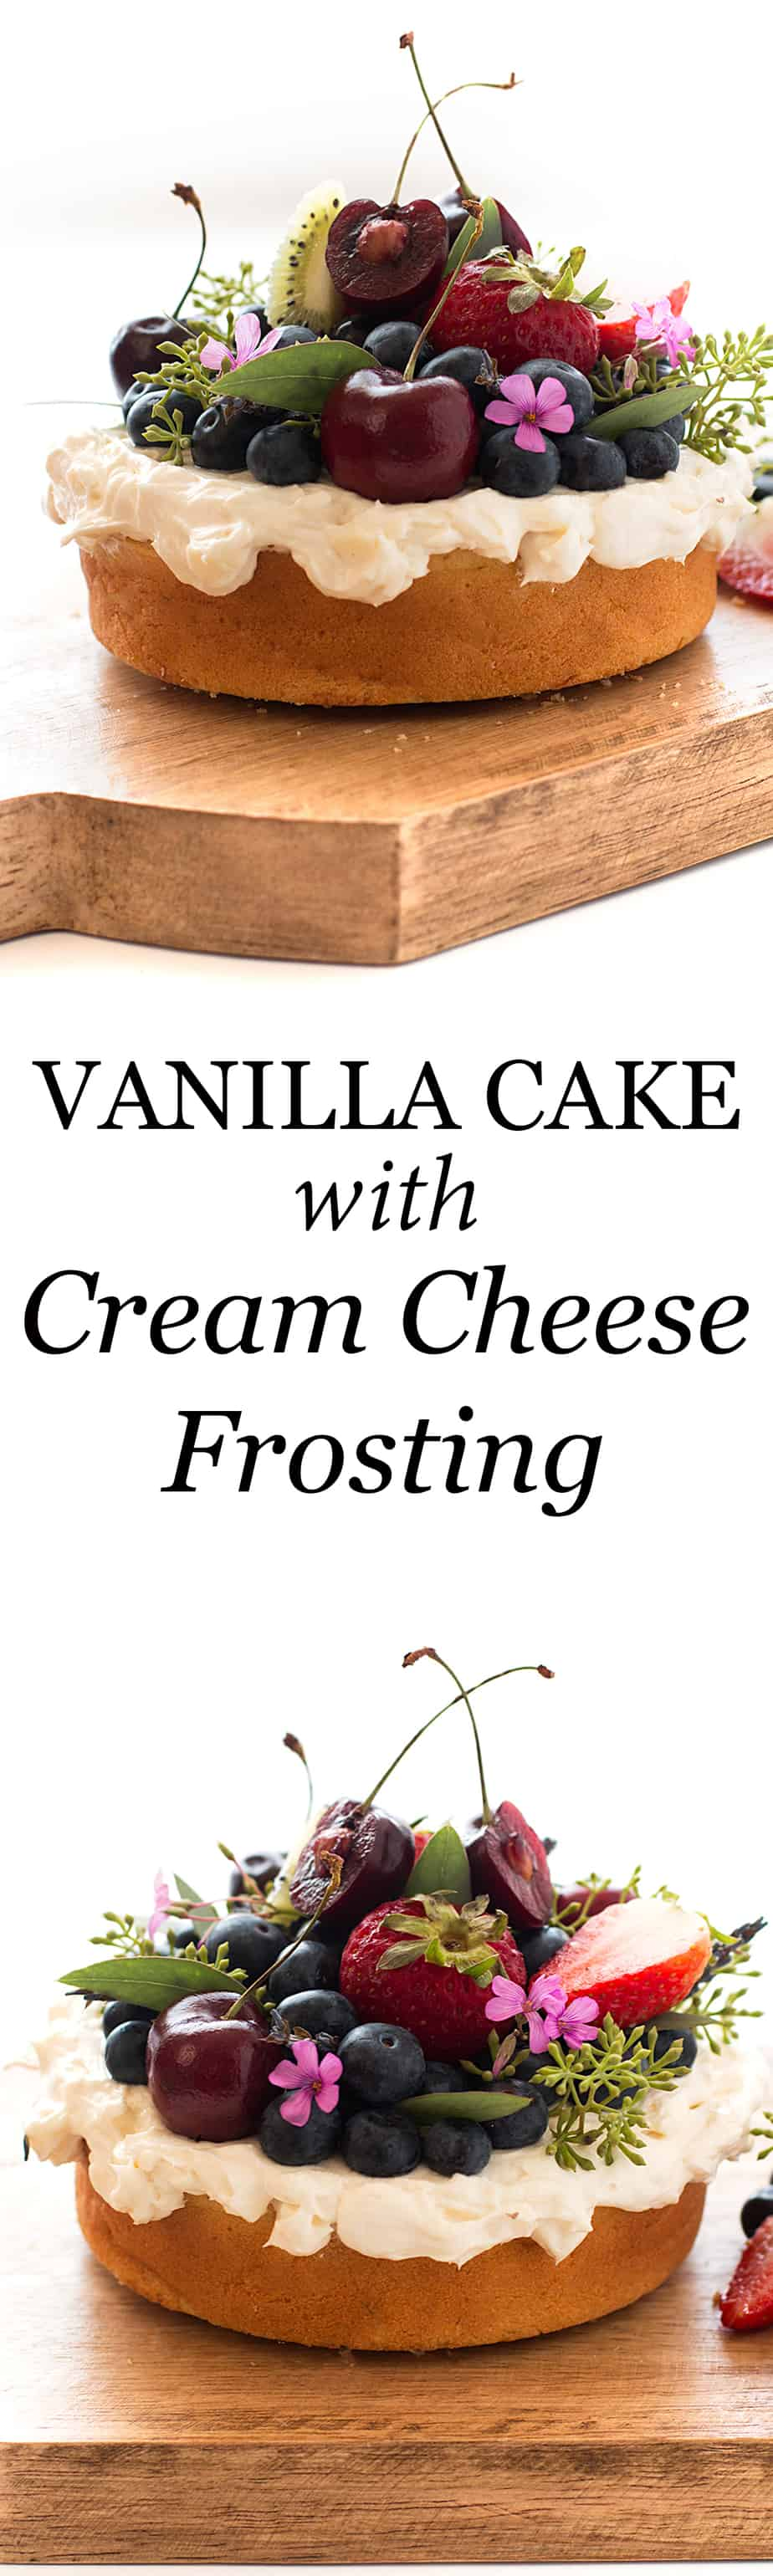 vanilla-cake-cream-cheese-frosting-recipe. Cream cheese frosting is a favorite of mine, especially when incorporating it into a vanilla cake from scratch. I think it's the highlight of the attached cake recipe , which also has fresh berries and a nice red, white and blue theme.